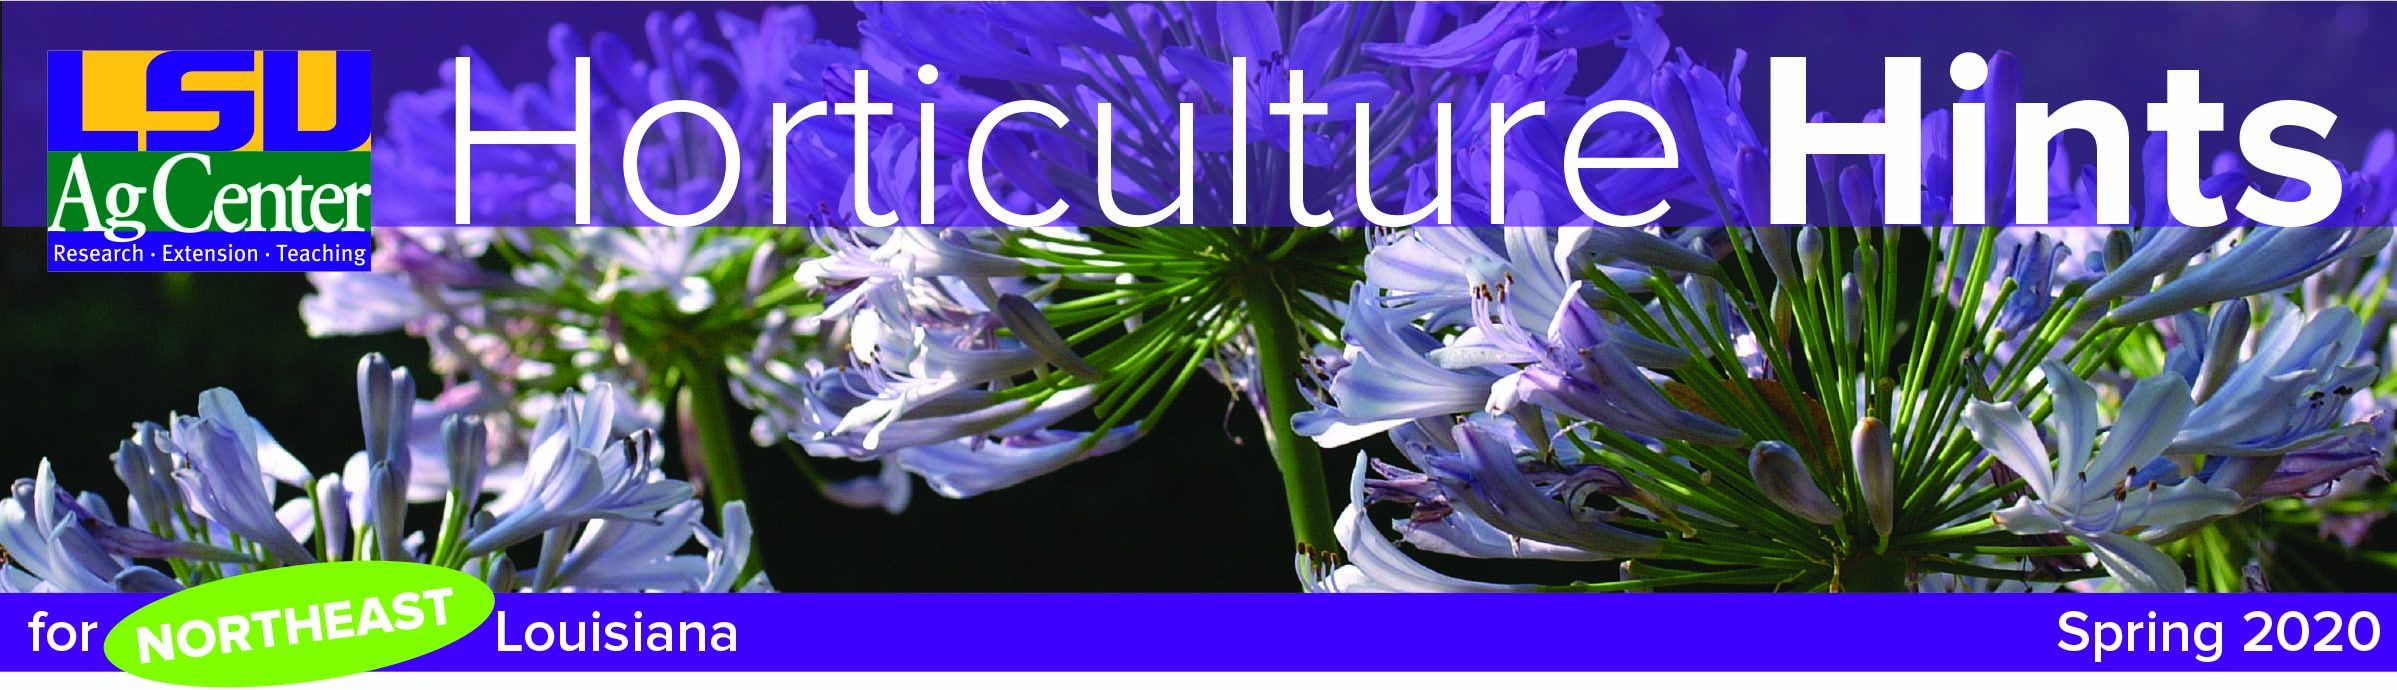 Horticulture Hints header for spring.